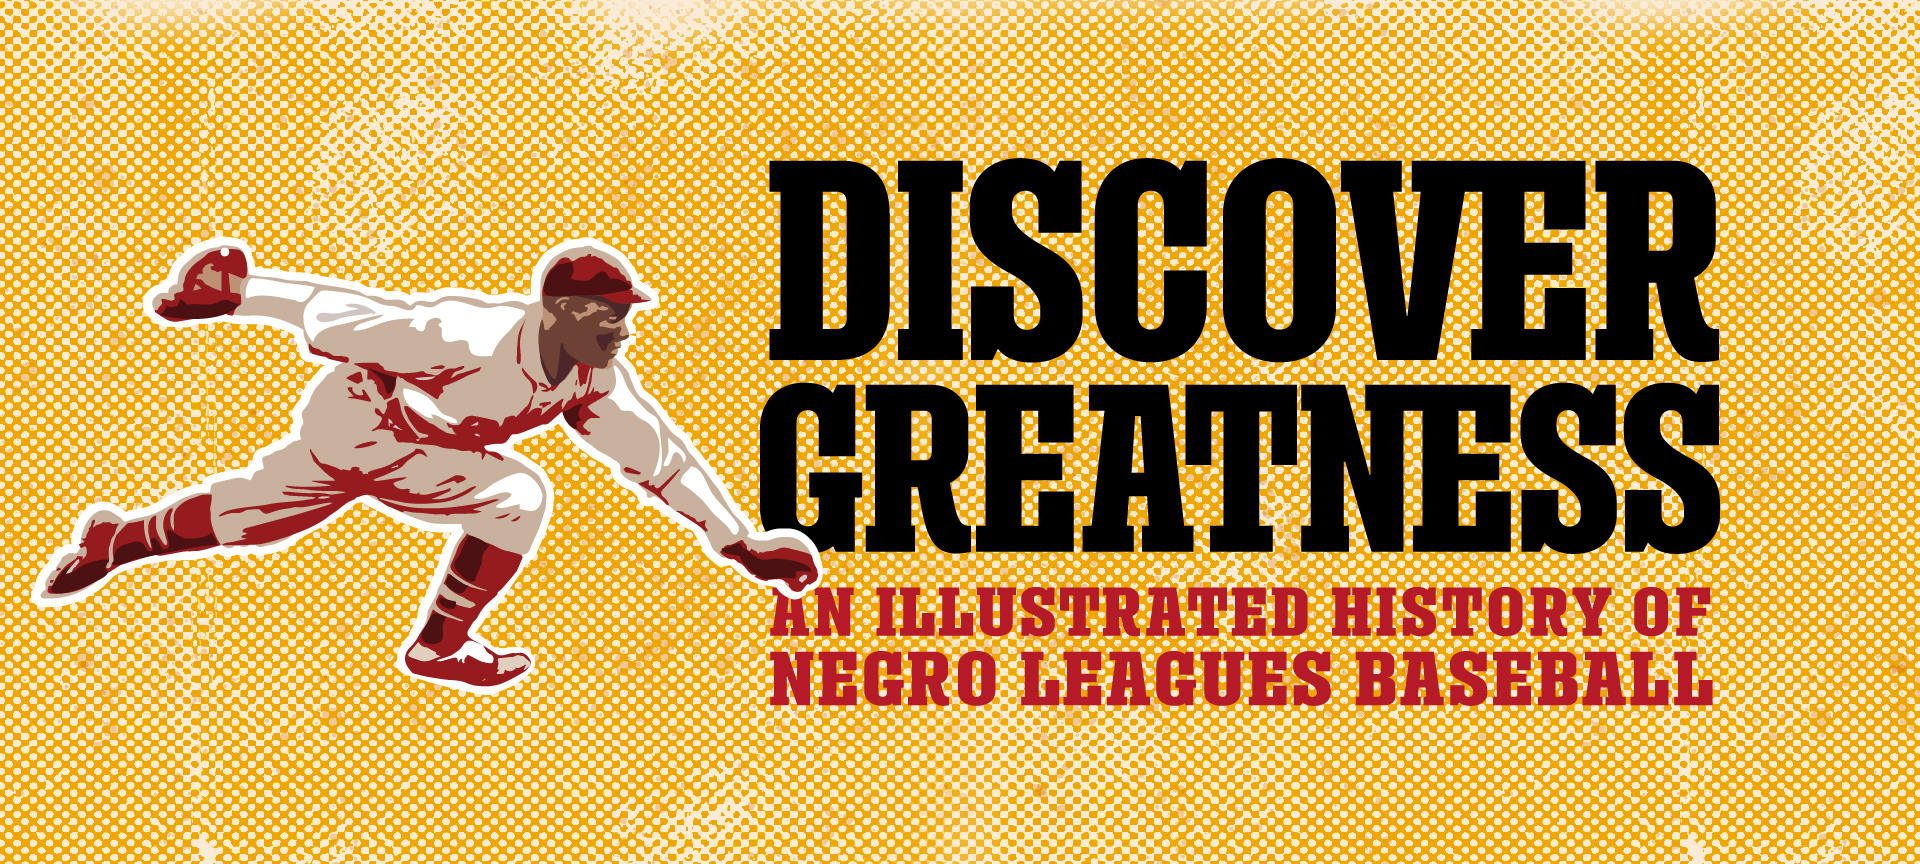 Discover Greatness: An Illustrated History of Negro Leagues Baseball